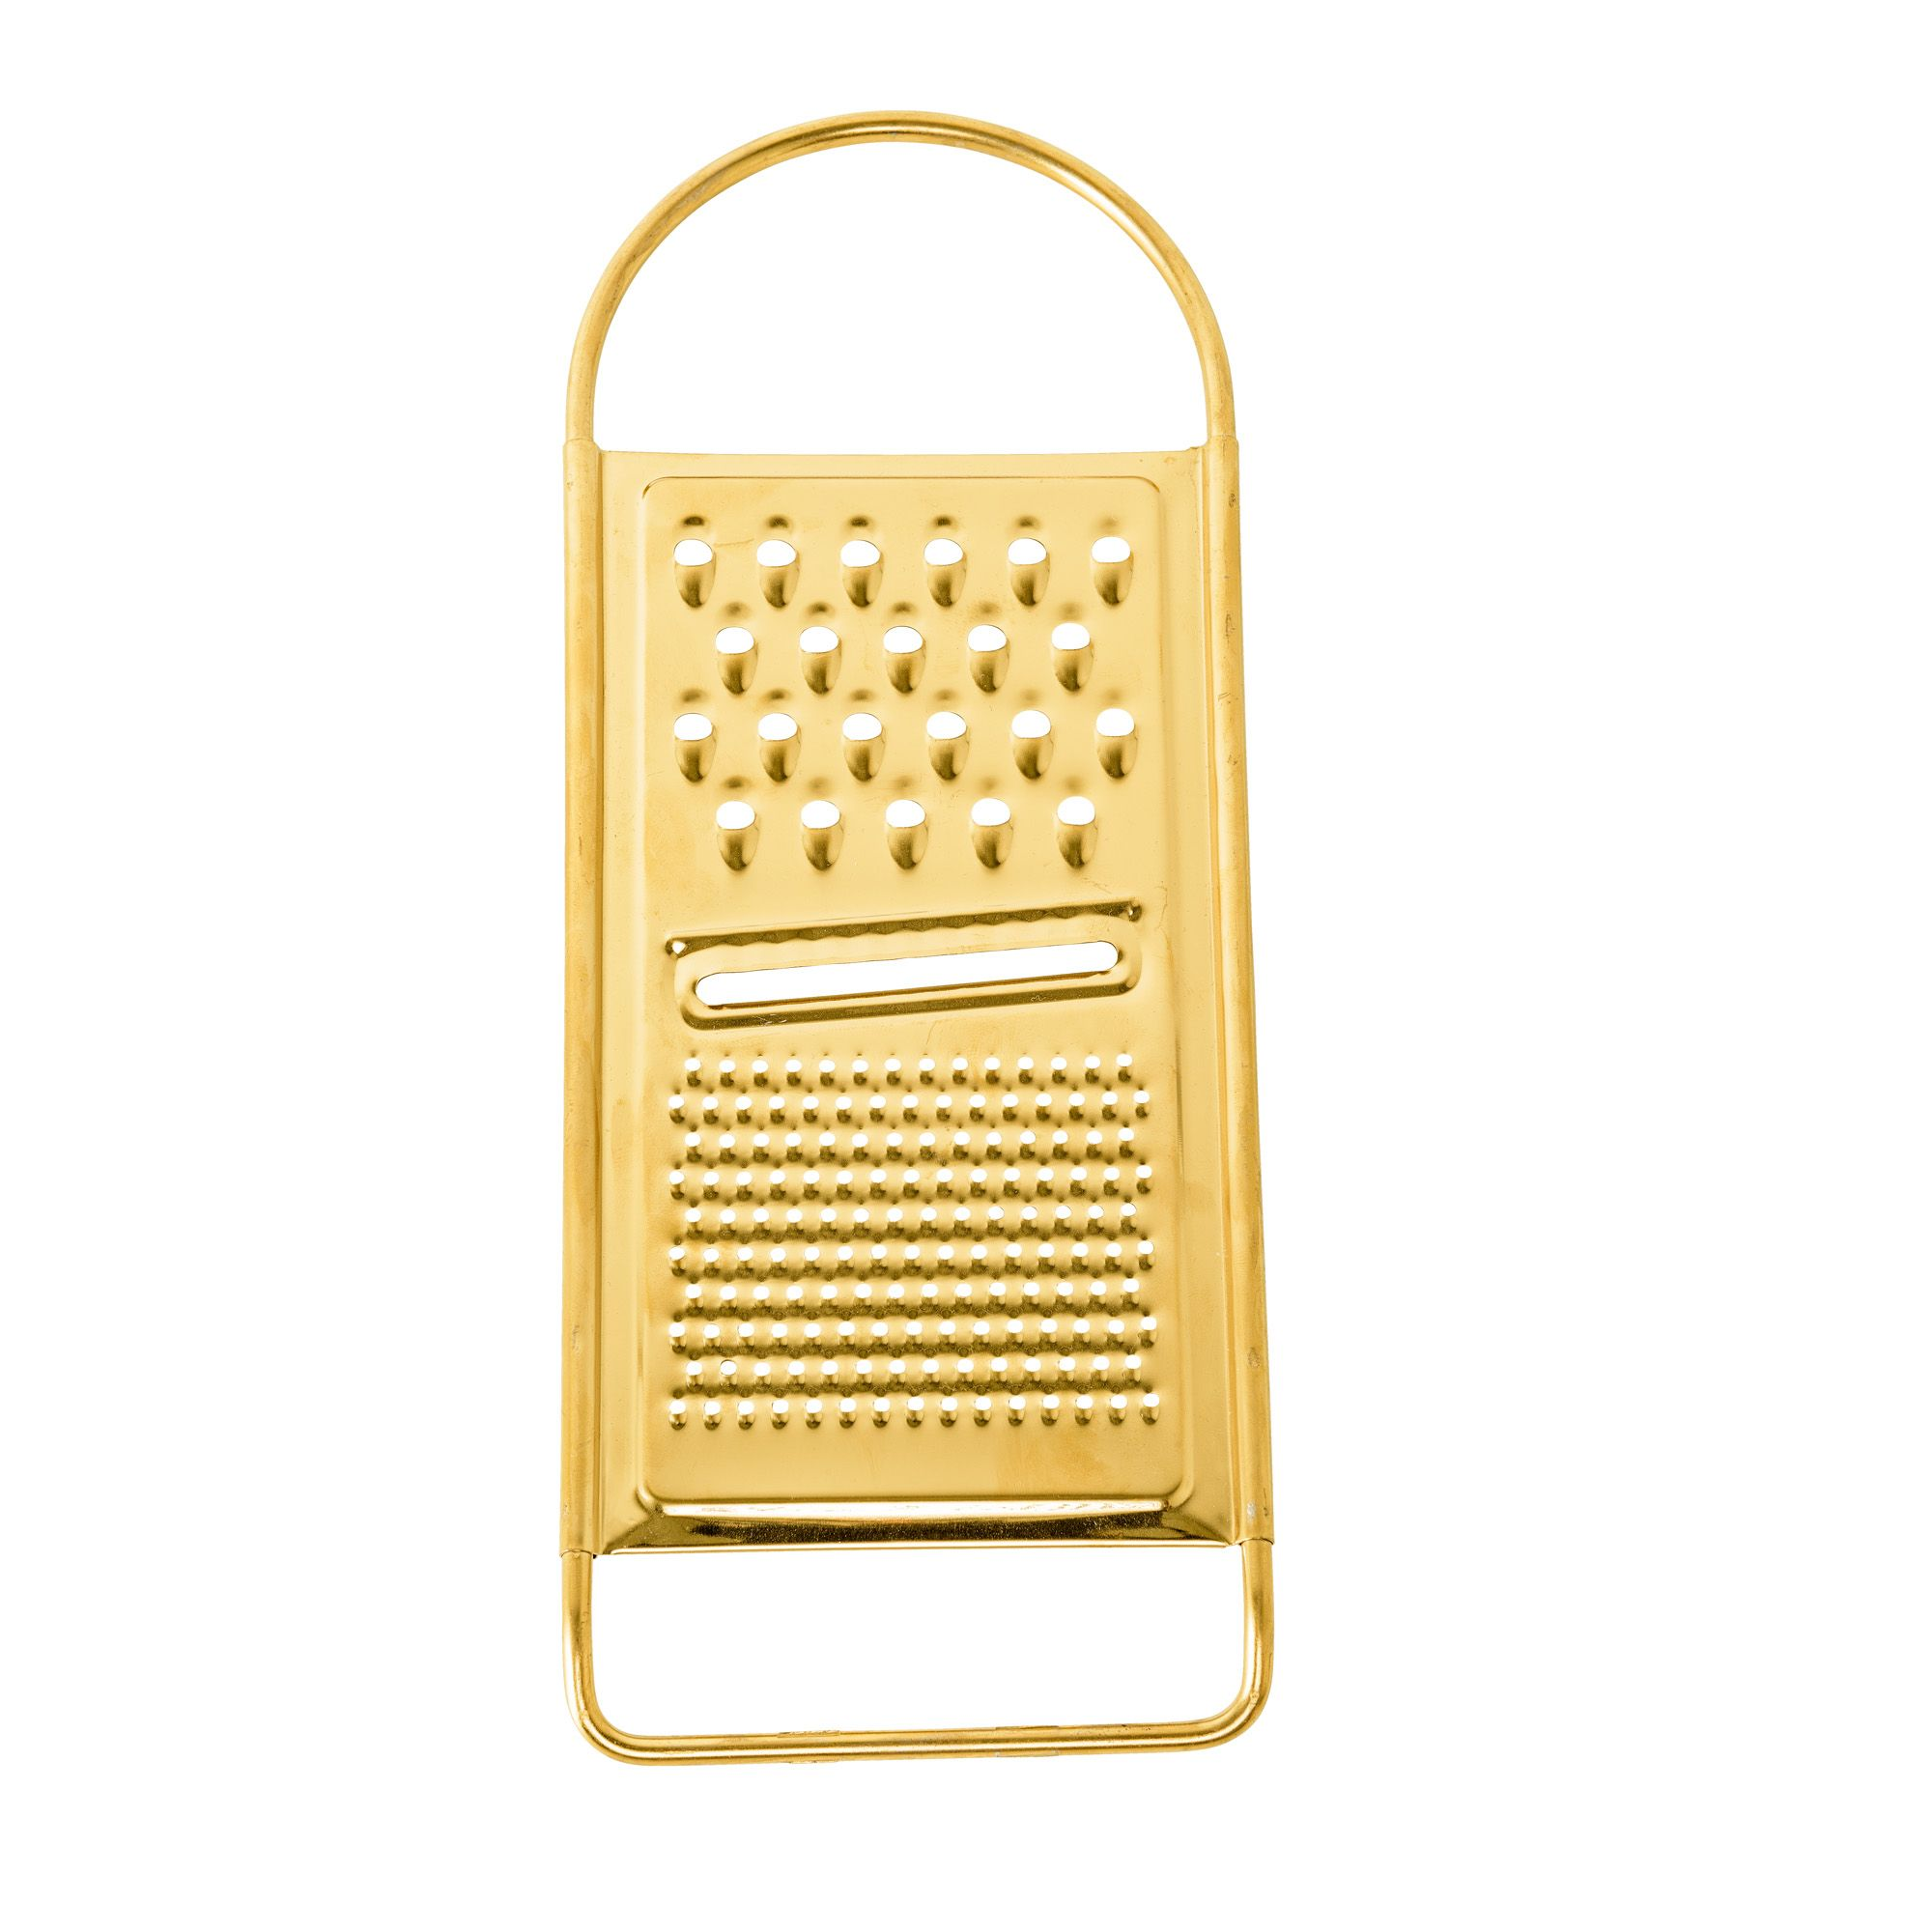 sharp grater box kitchen ultra high remi res stainless steel chef products